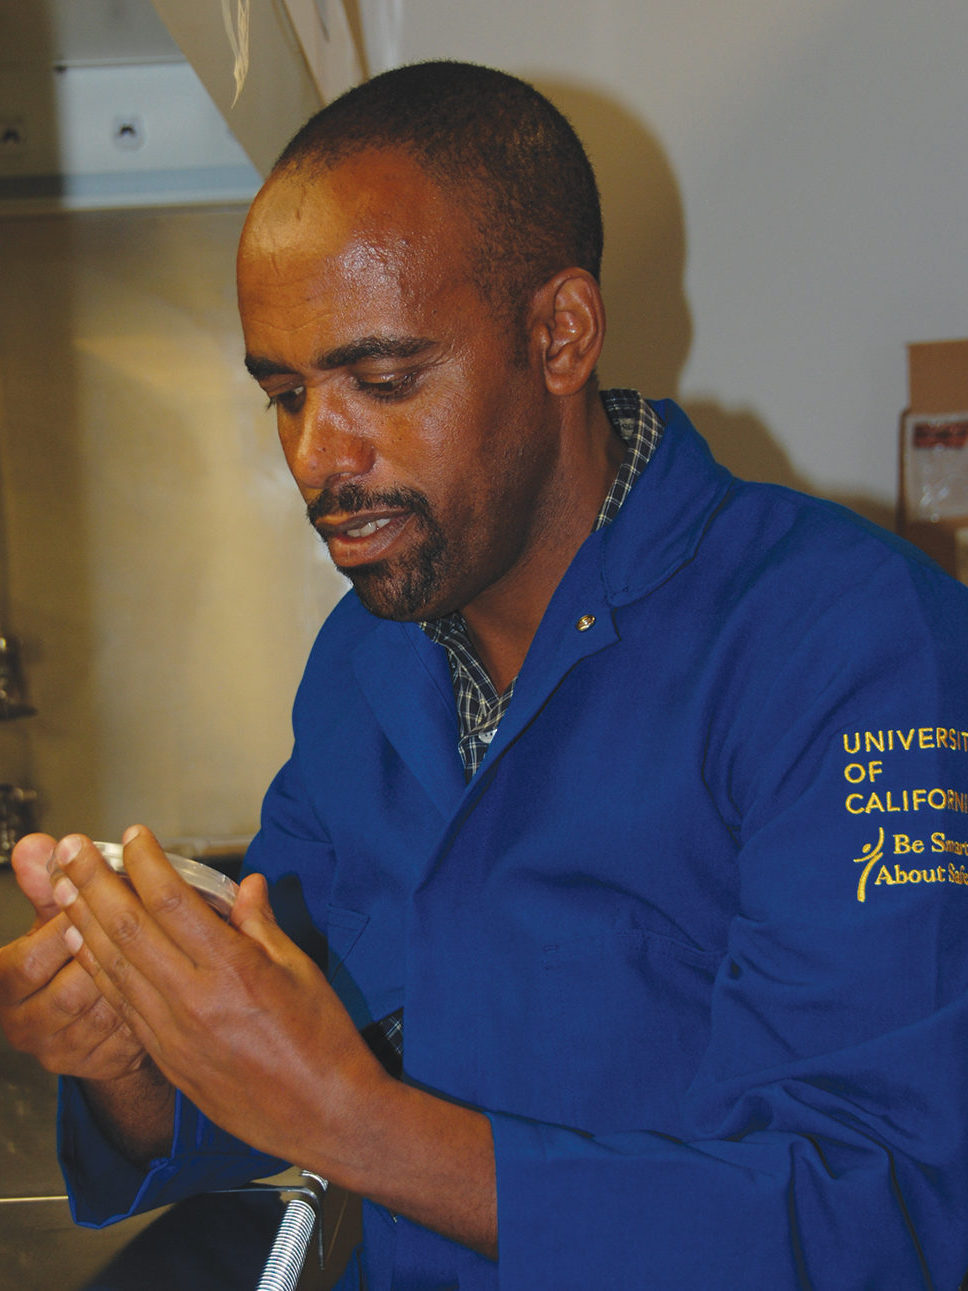 Sultan Mohammed Yimer working in the lab at UC Davis